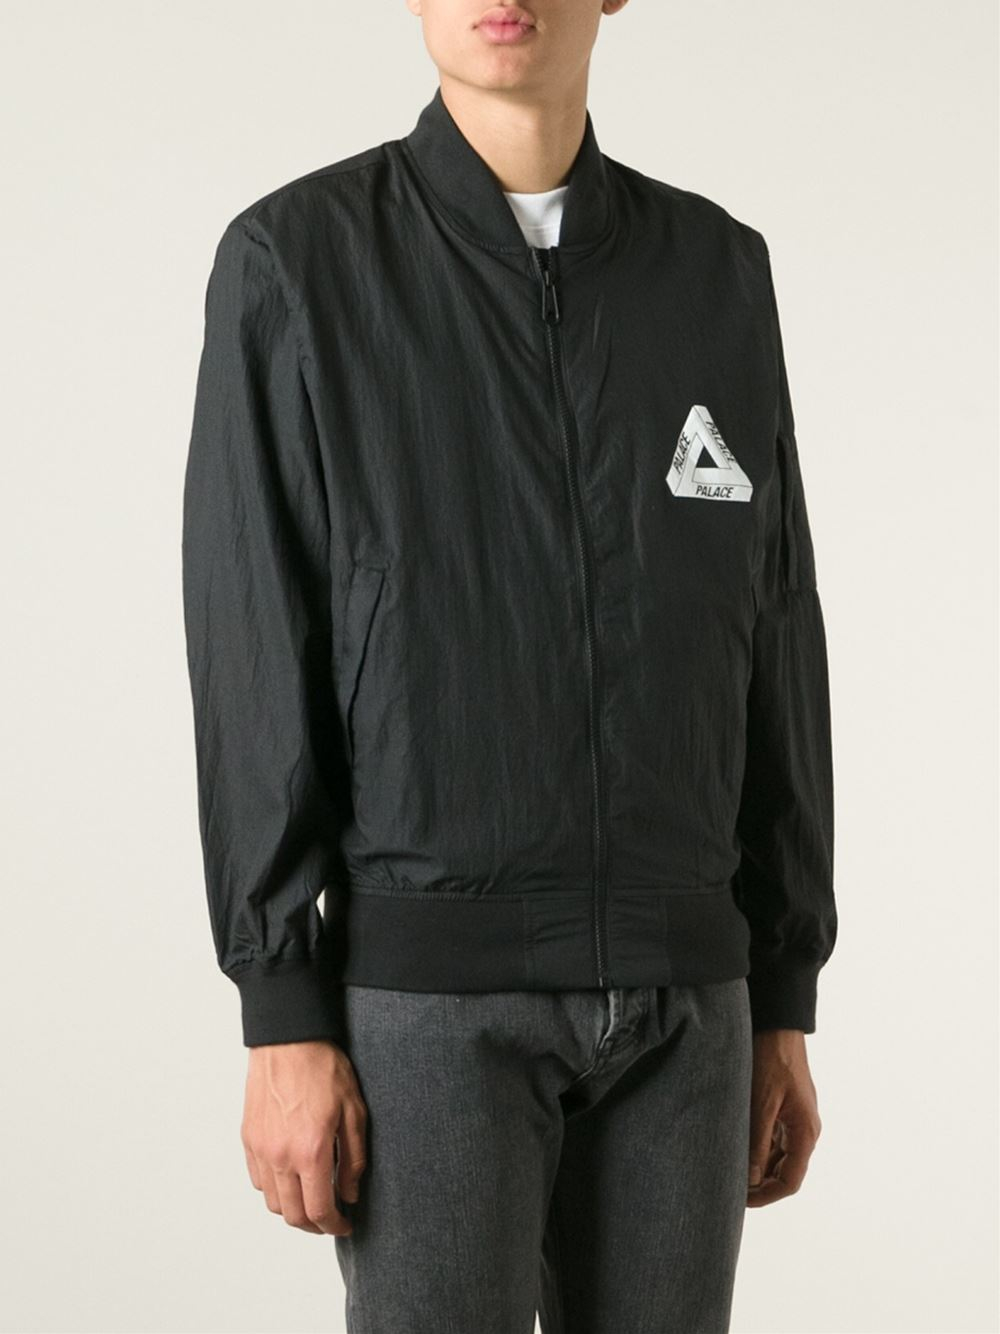 Palace Tech Bomber Jacket In Black For Men Lyst